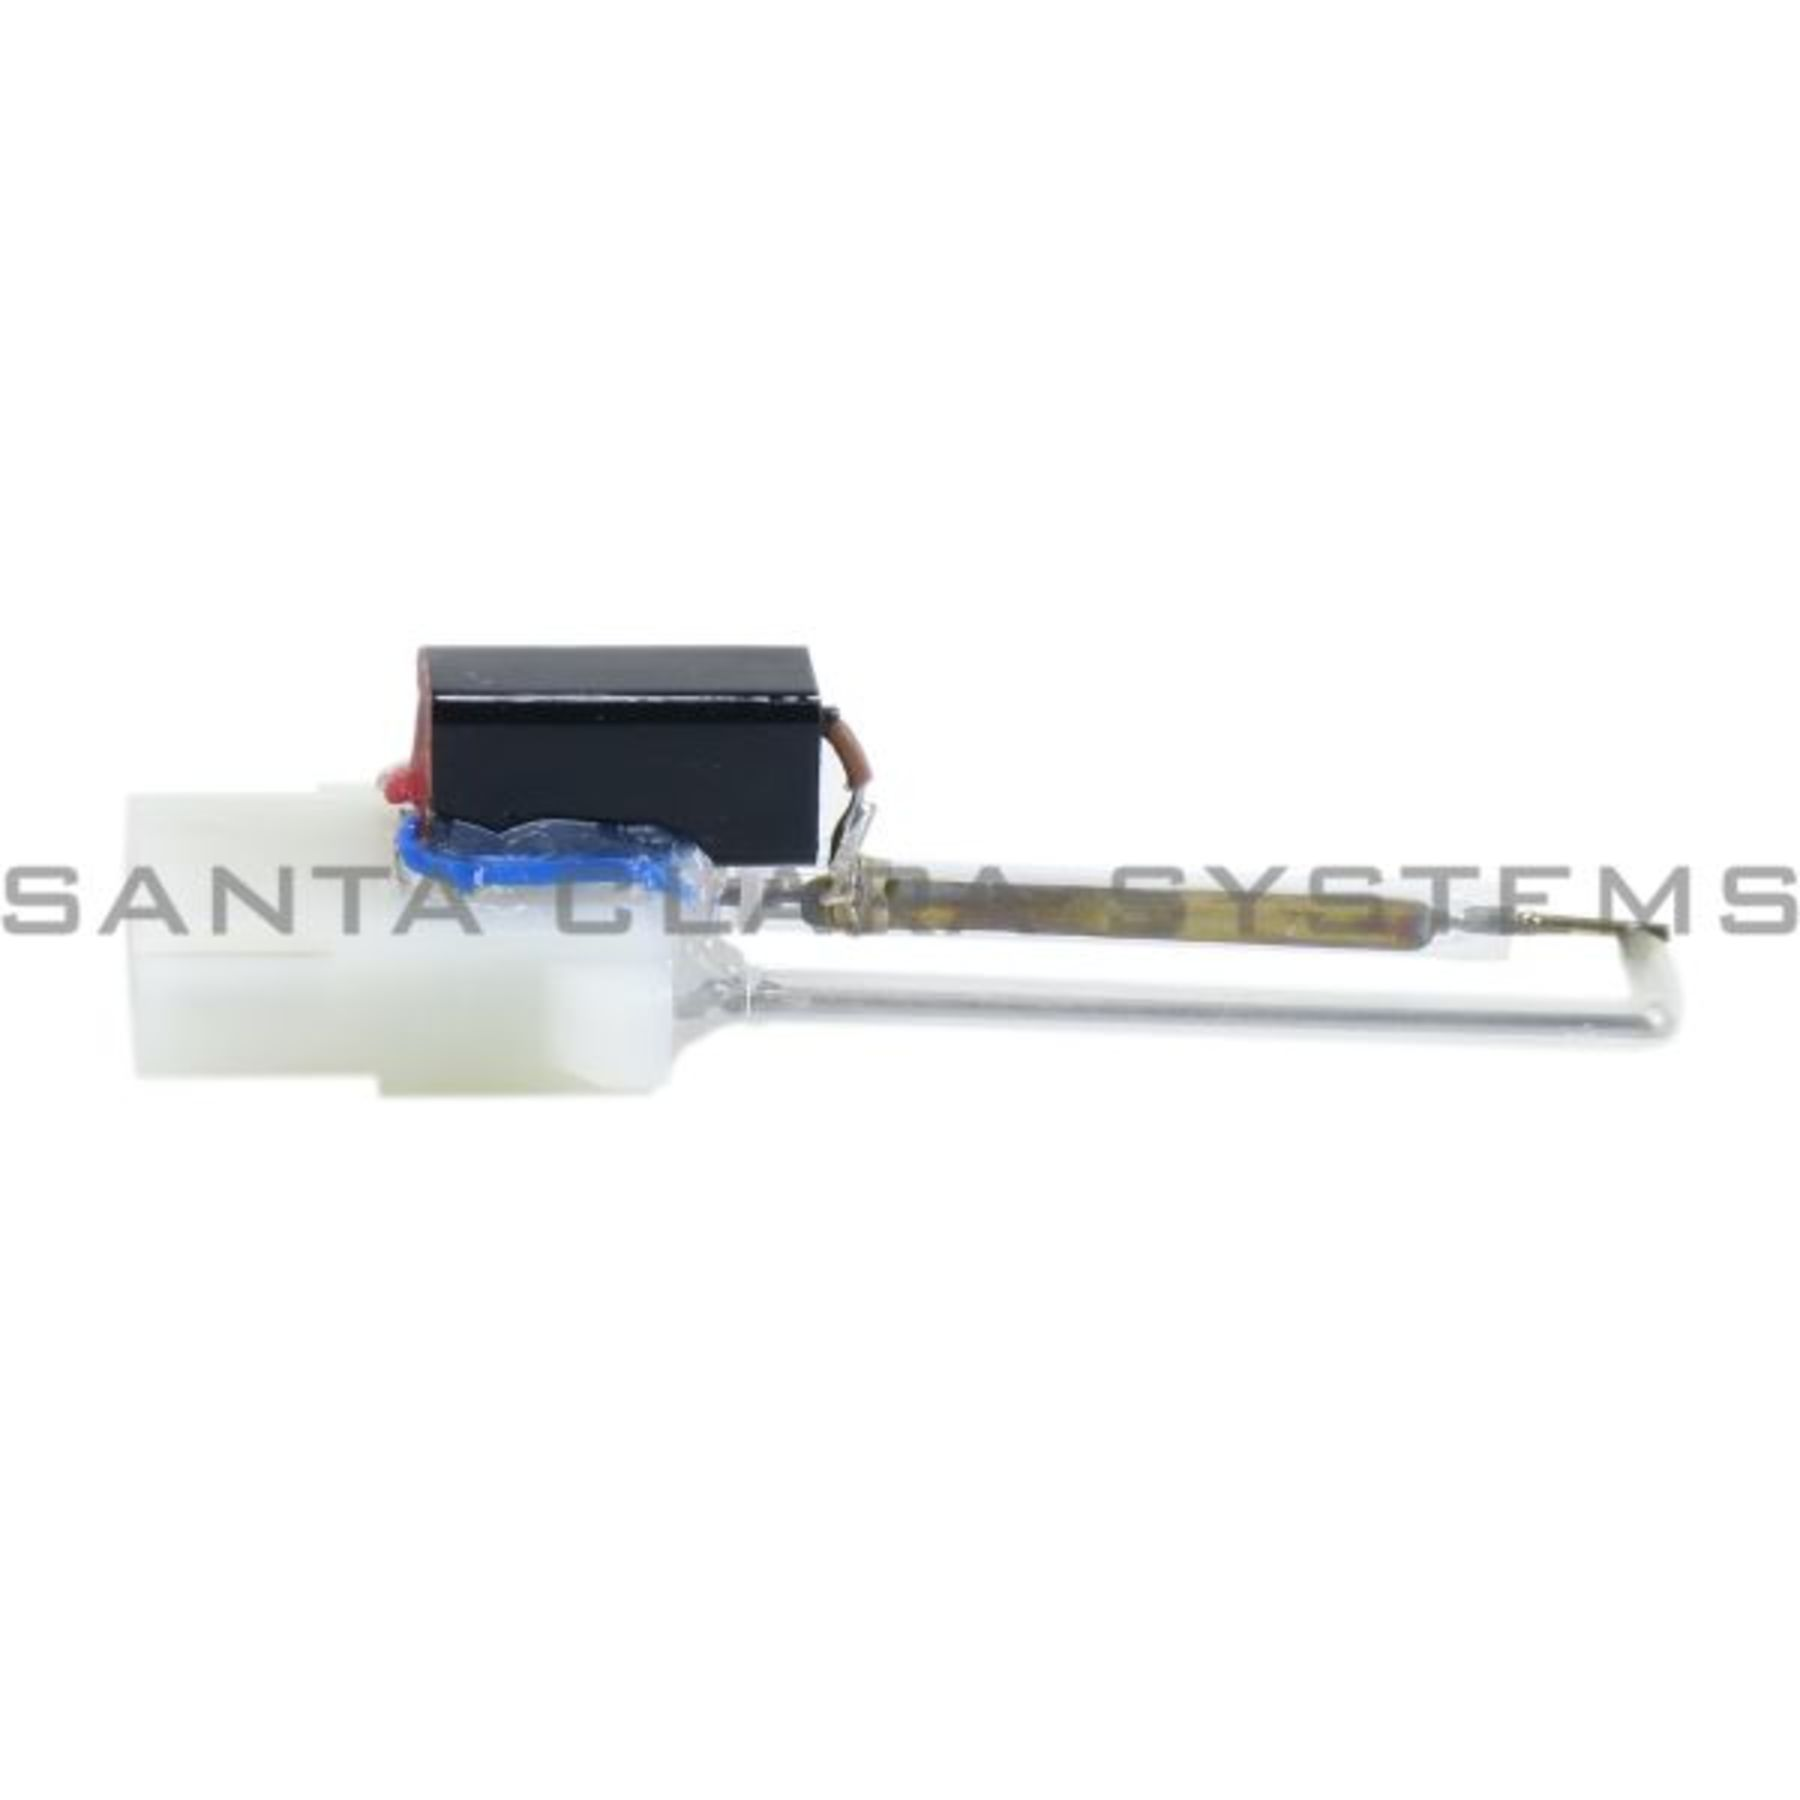 K149130a Flash Tube Assembly Federal Signal In Stock Santa Clara Circuit Capacitor Product Image